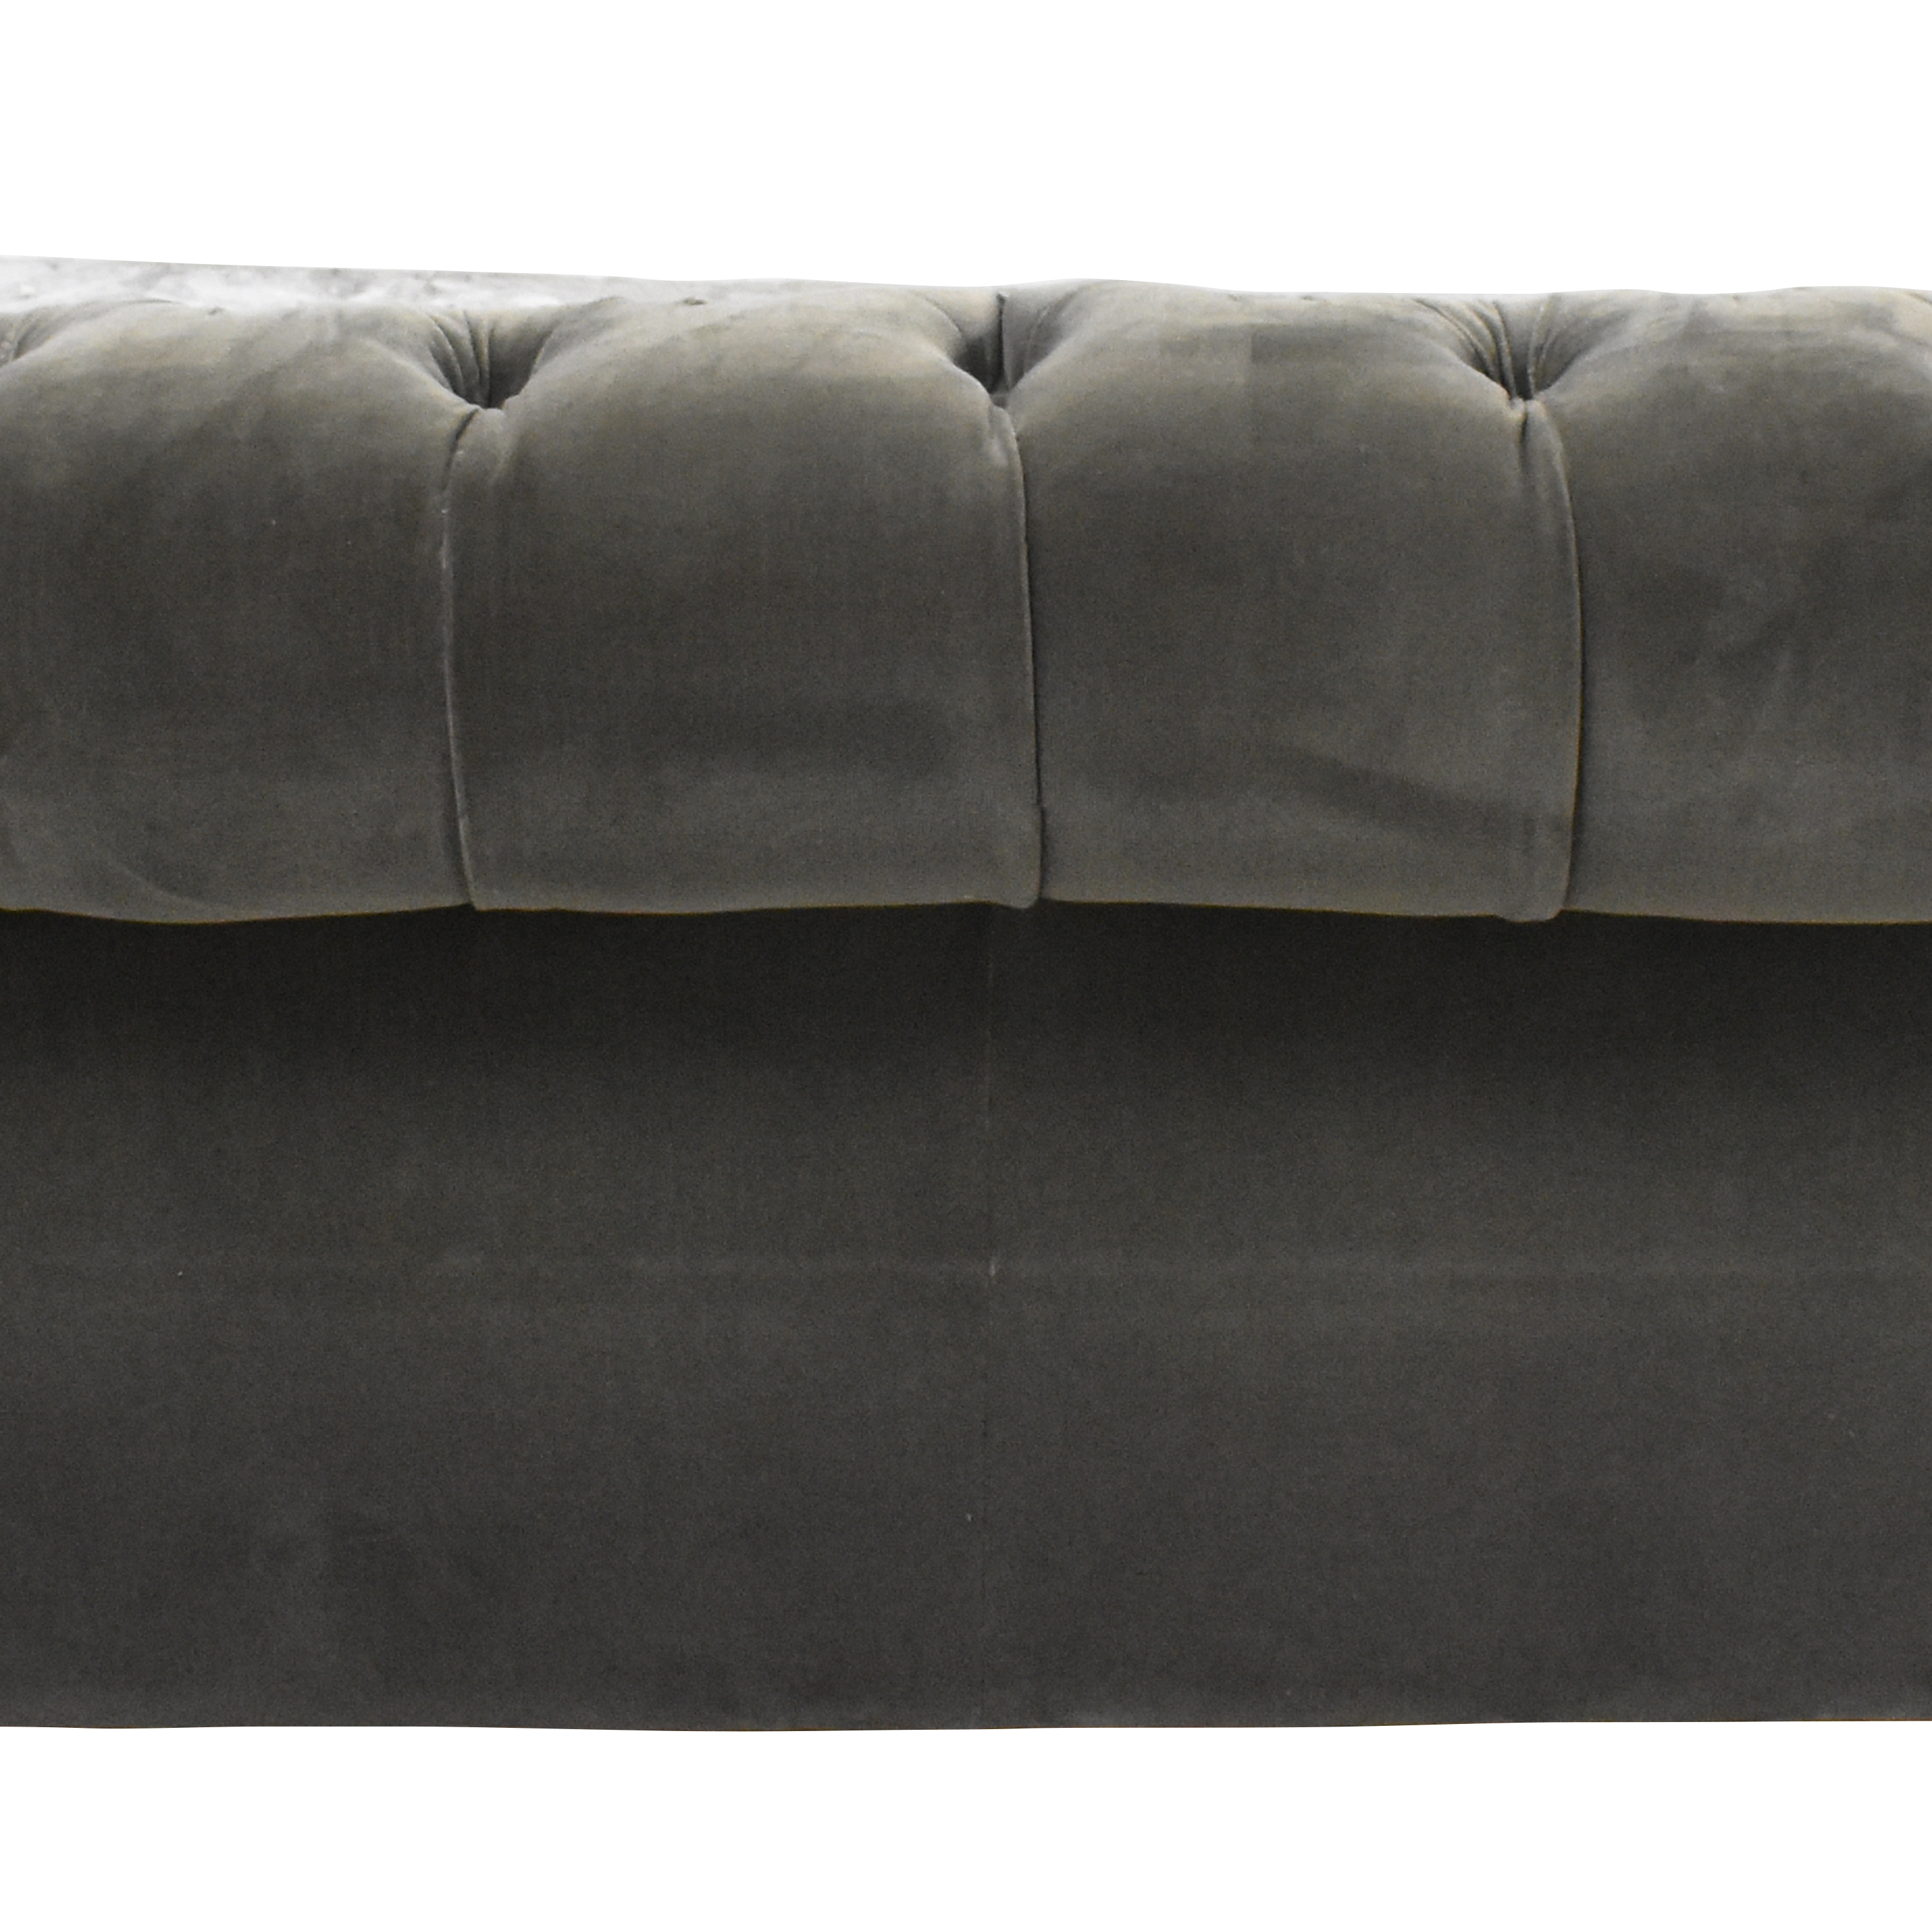 Restoration Hardware Kensington Chesterfield Sofa Restoration Hardware